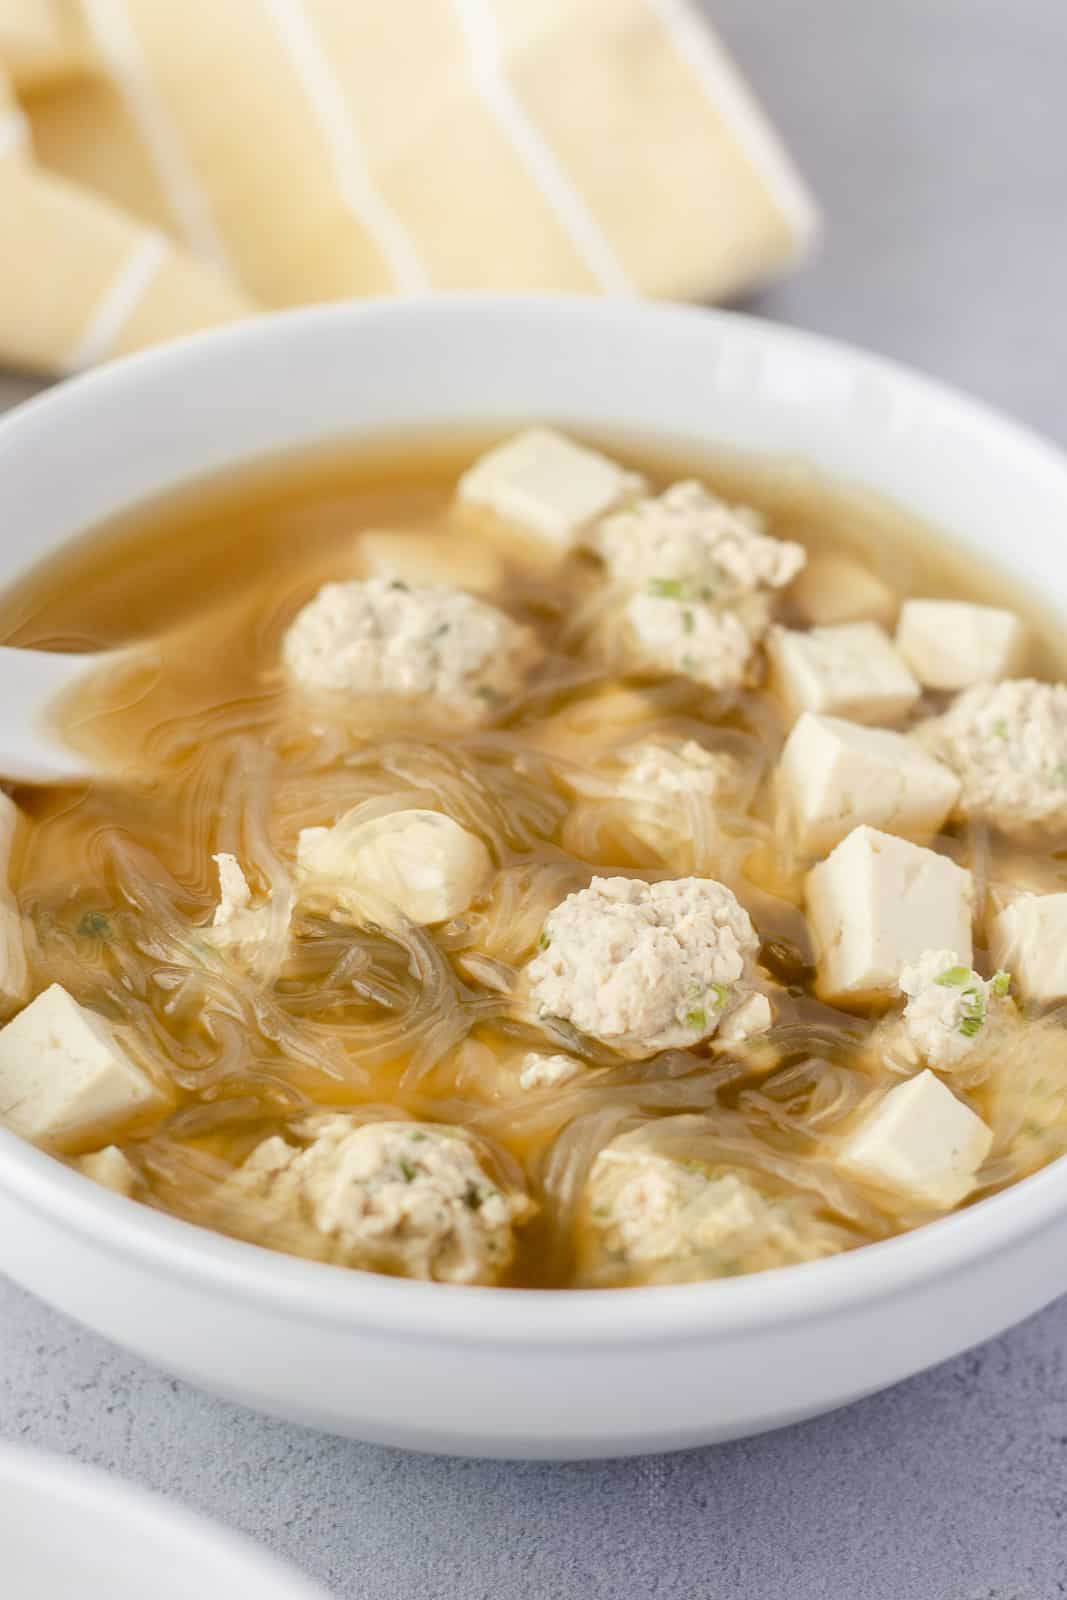 Thai glass noodle soup in a white bowl with meatballs and tofu.